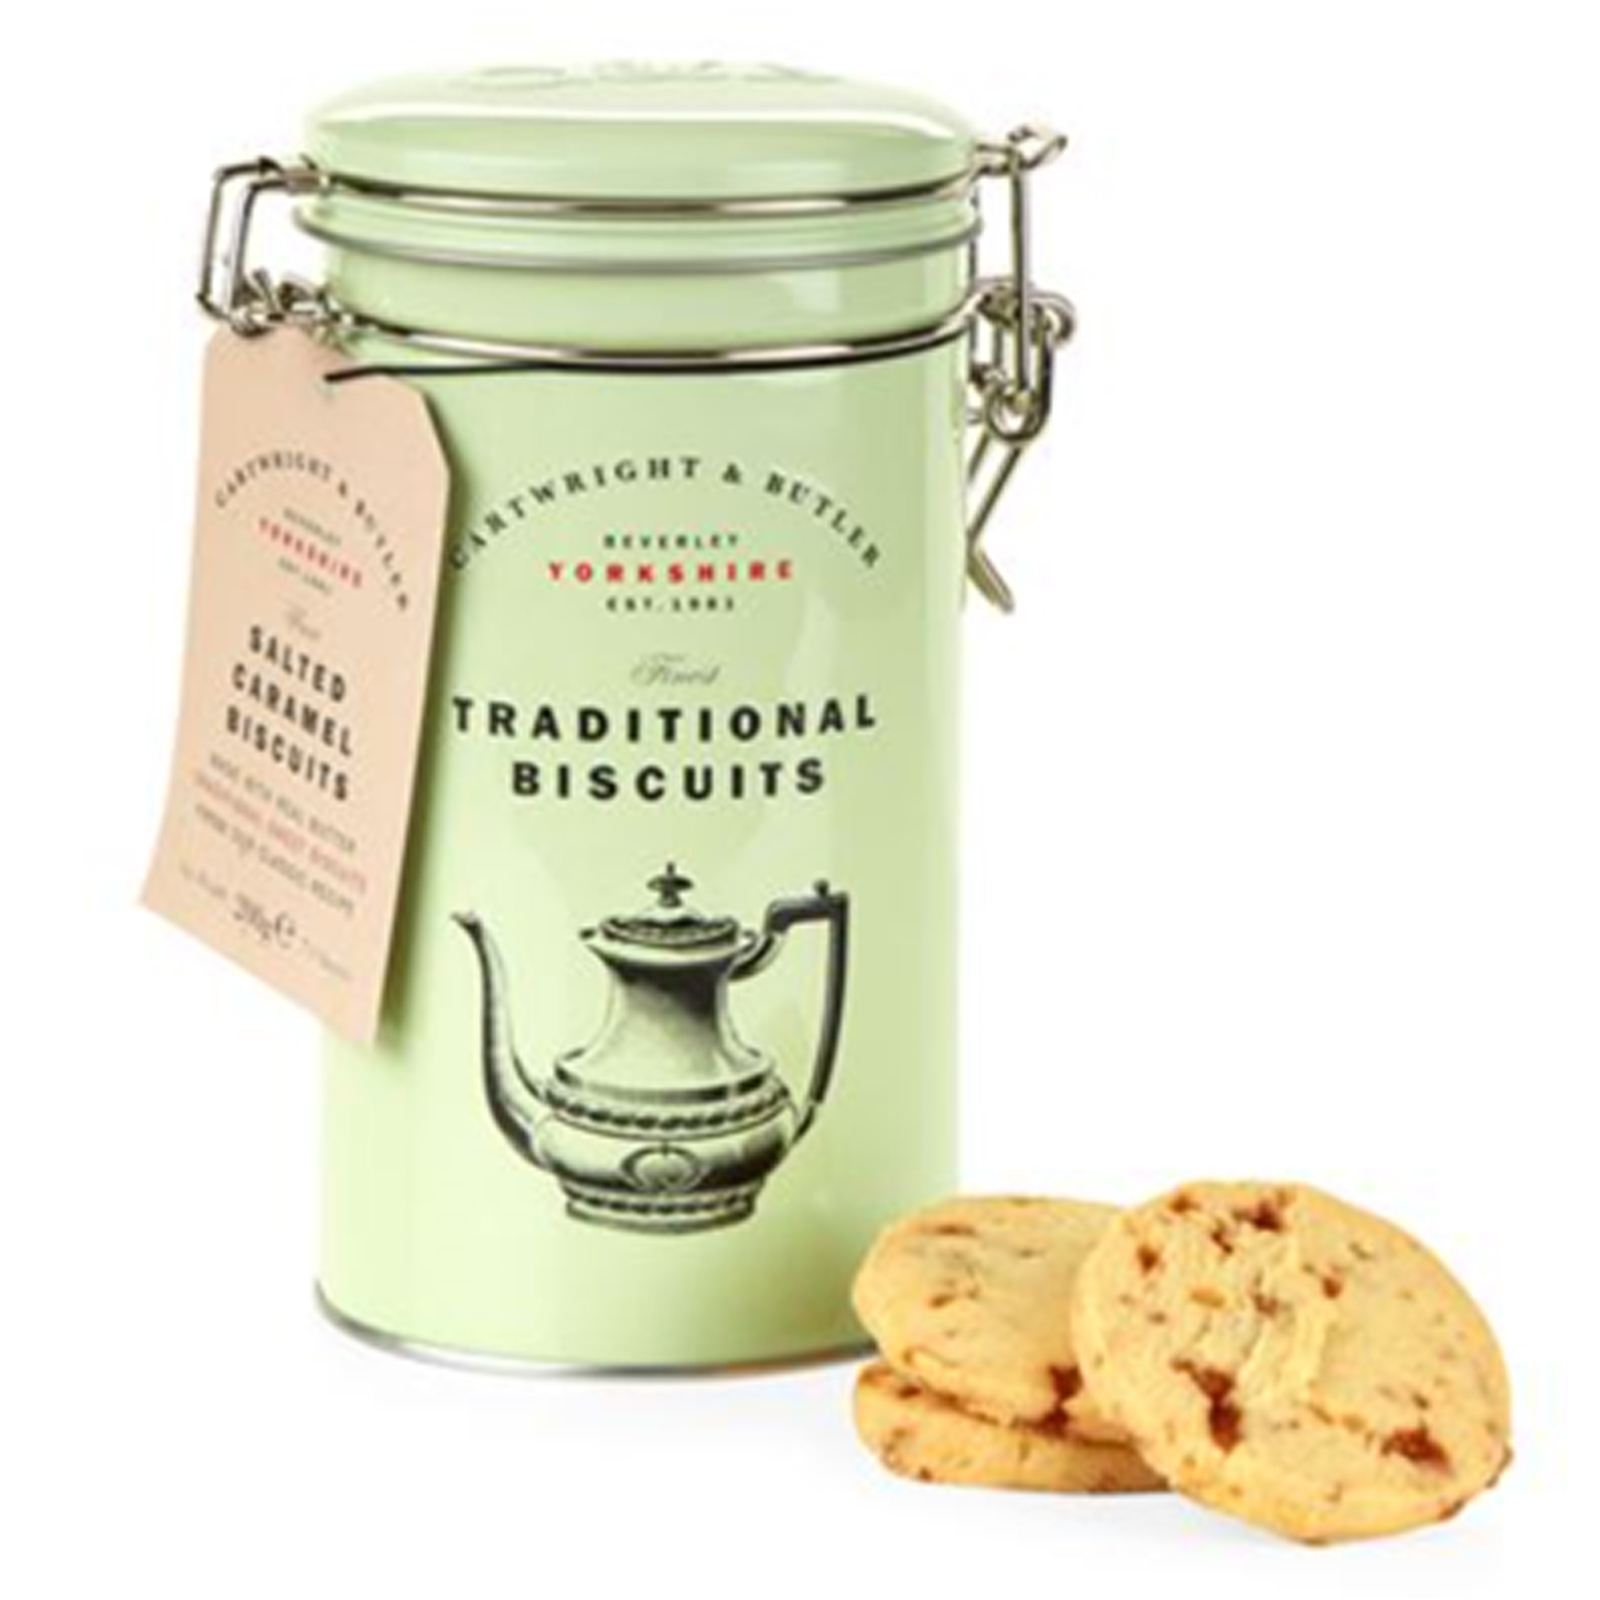 Salted Caramel Biscuits in a Tin by Cartwright & Butler